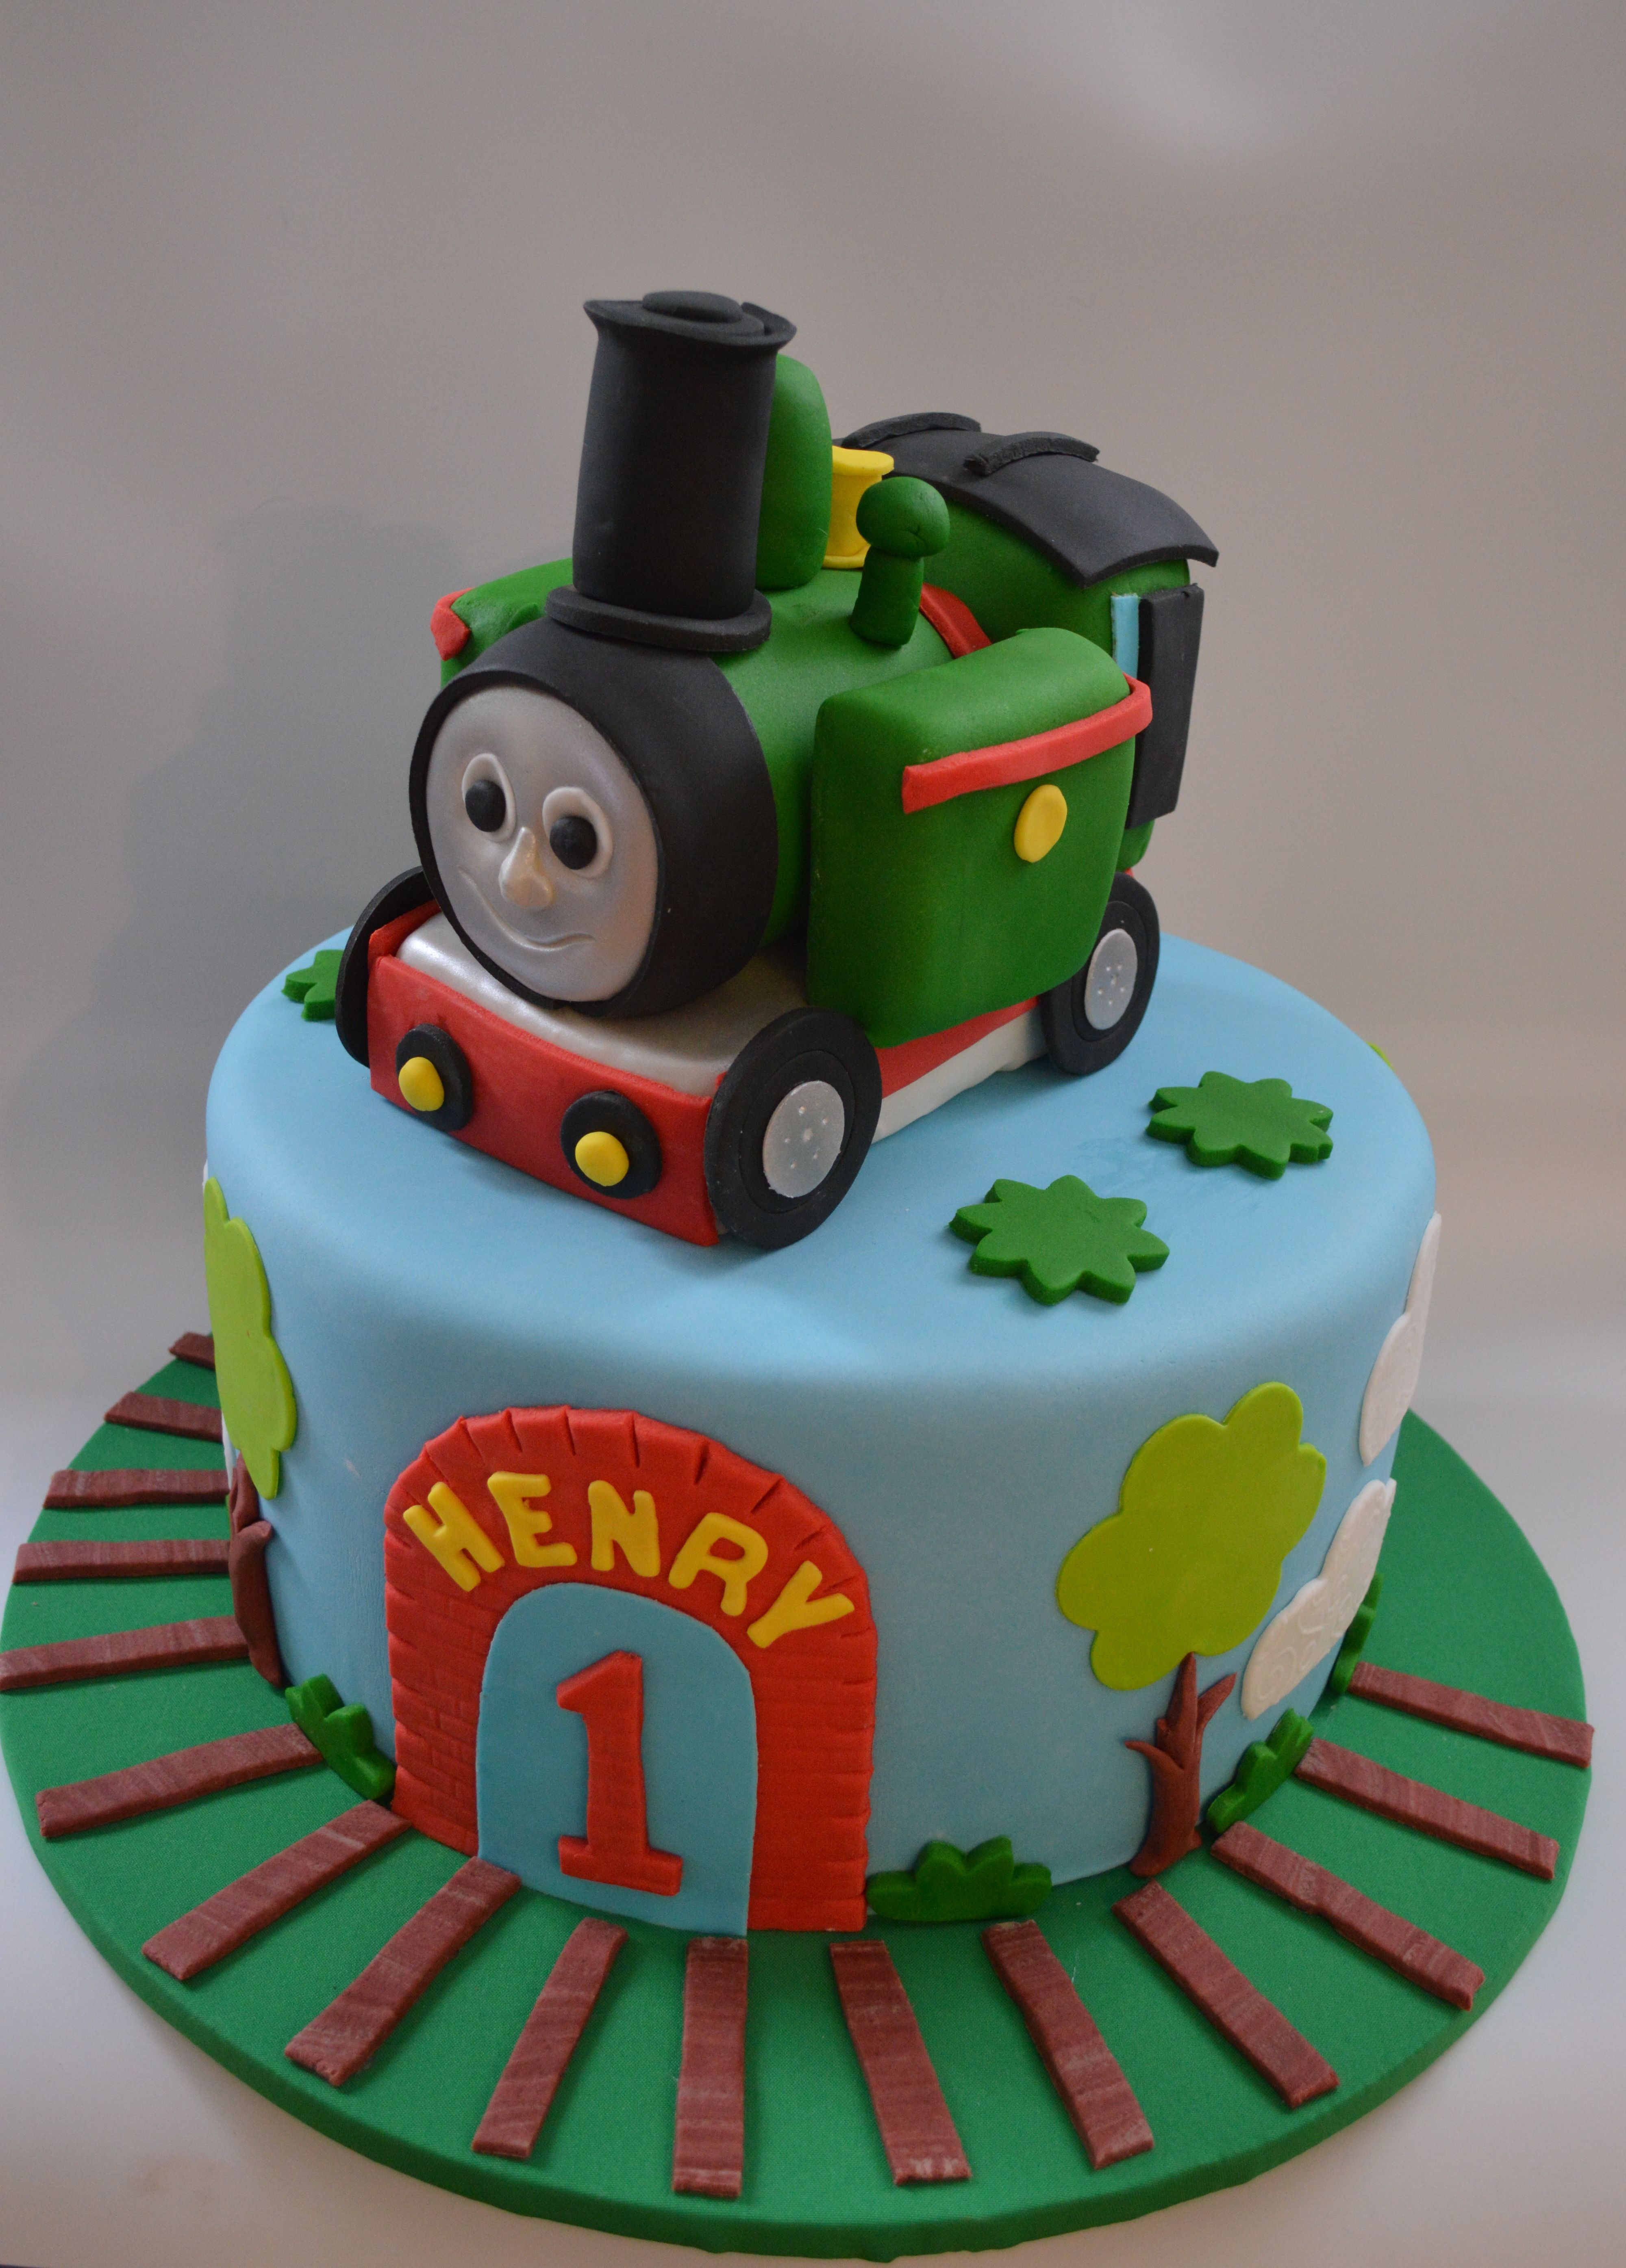 Surprising Henry Train Cake With Images First Birthday Cakes Train Cake Funny Birthday Cards Online Elaedamsfinfo